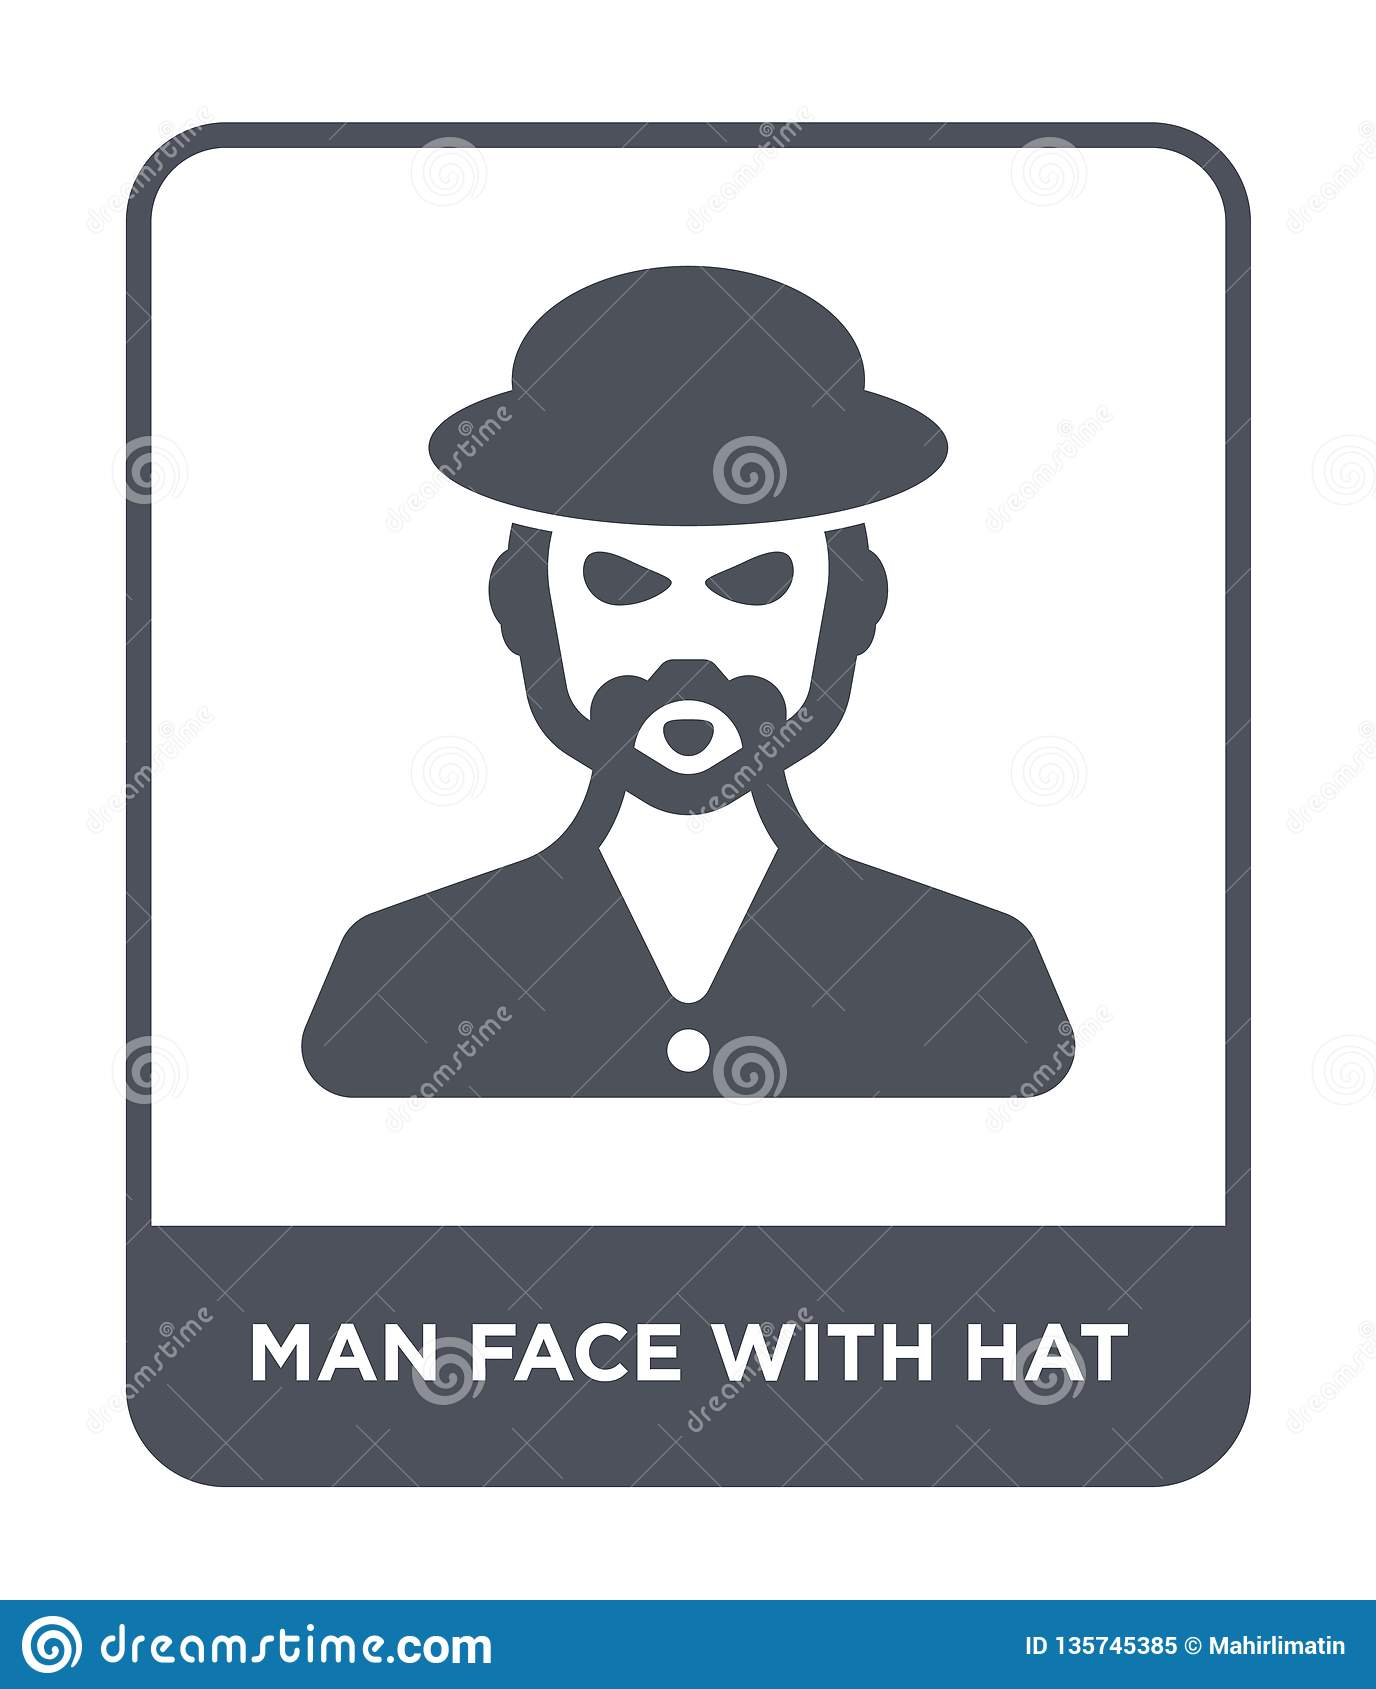 18a2162315908 man face with hat icon in trendy design style. man face with hat icon  isolated on white background. man face with hat vector icon simple and  modern flat ...